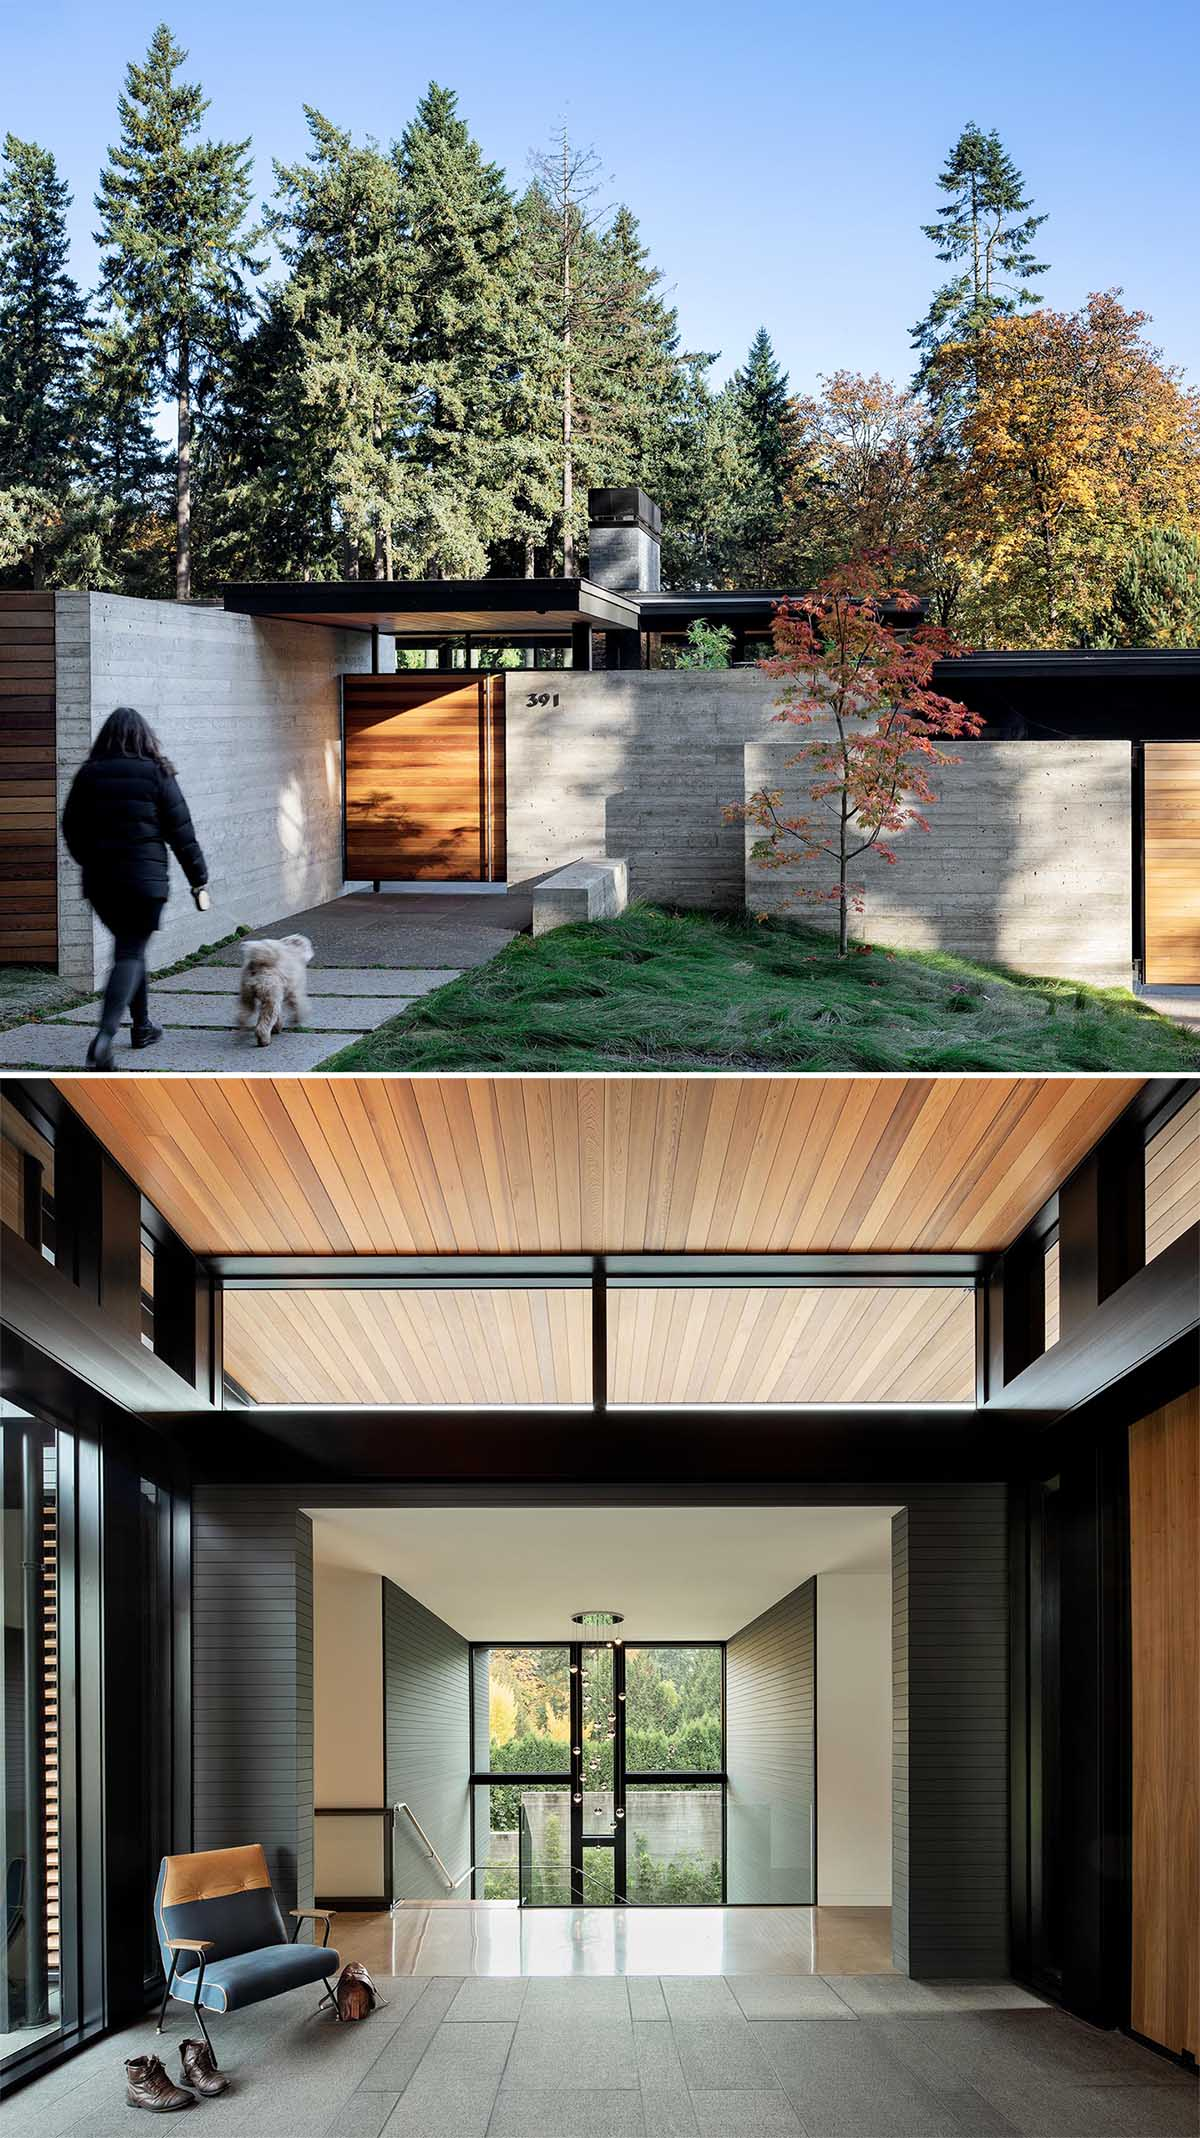 A modern home with a concrete wall and wood front door.